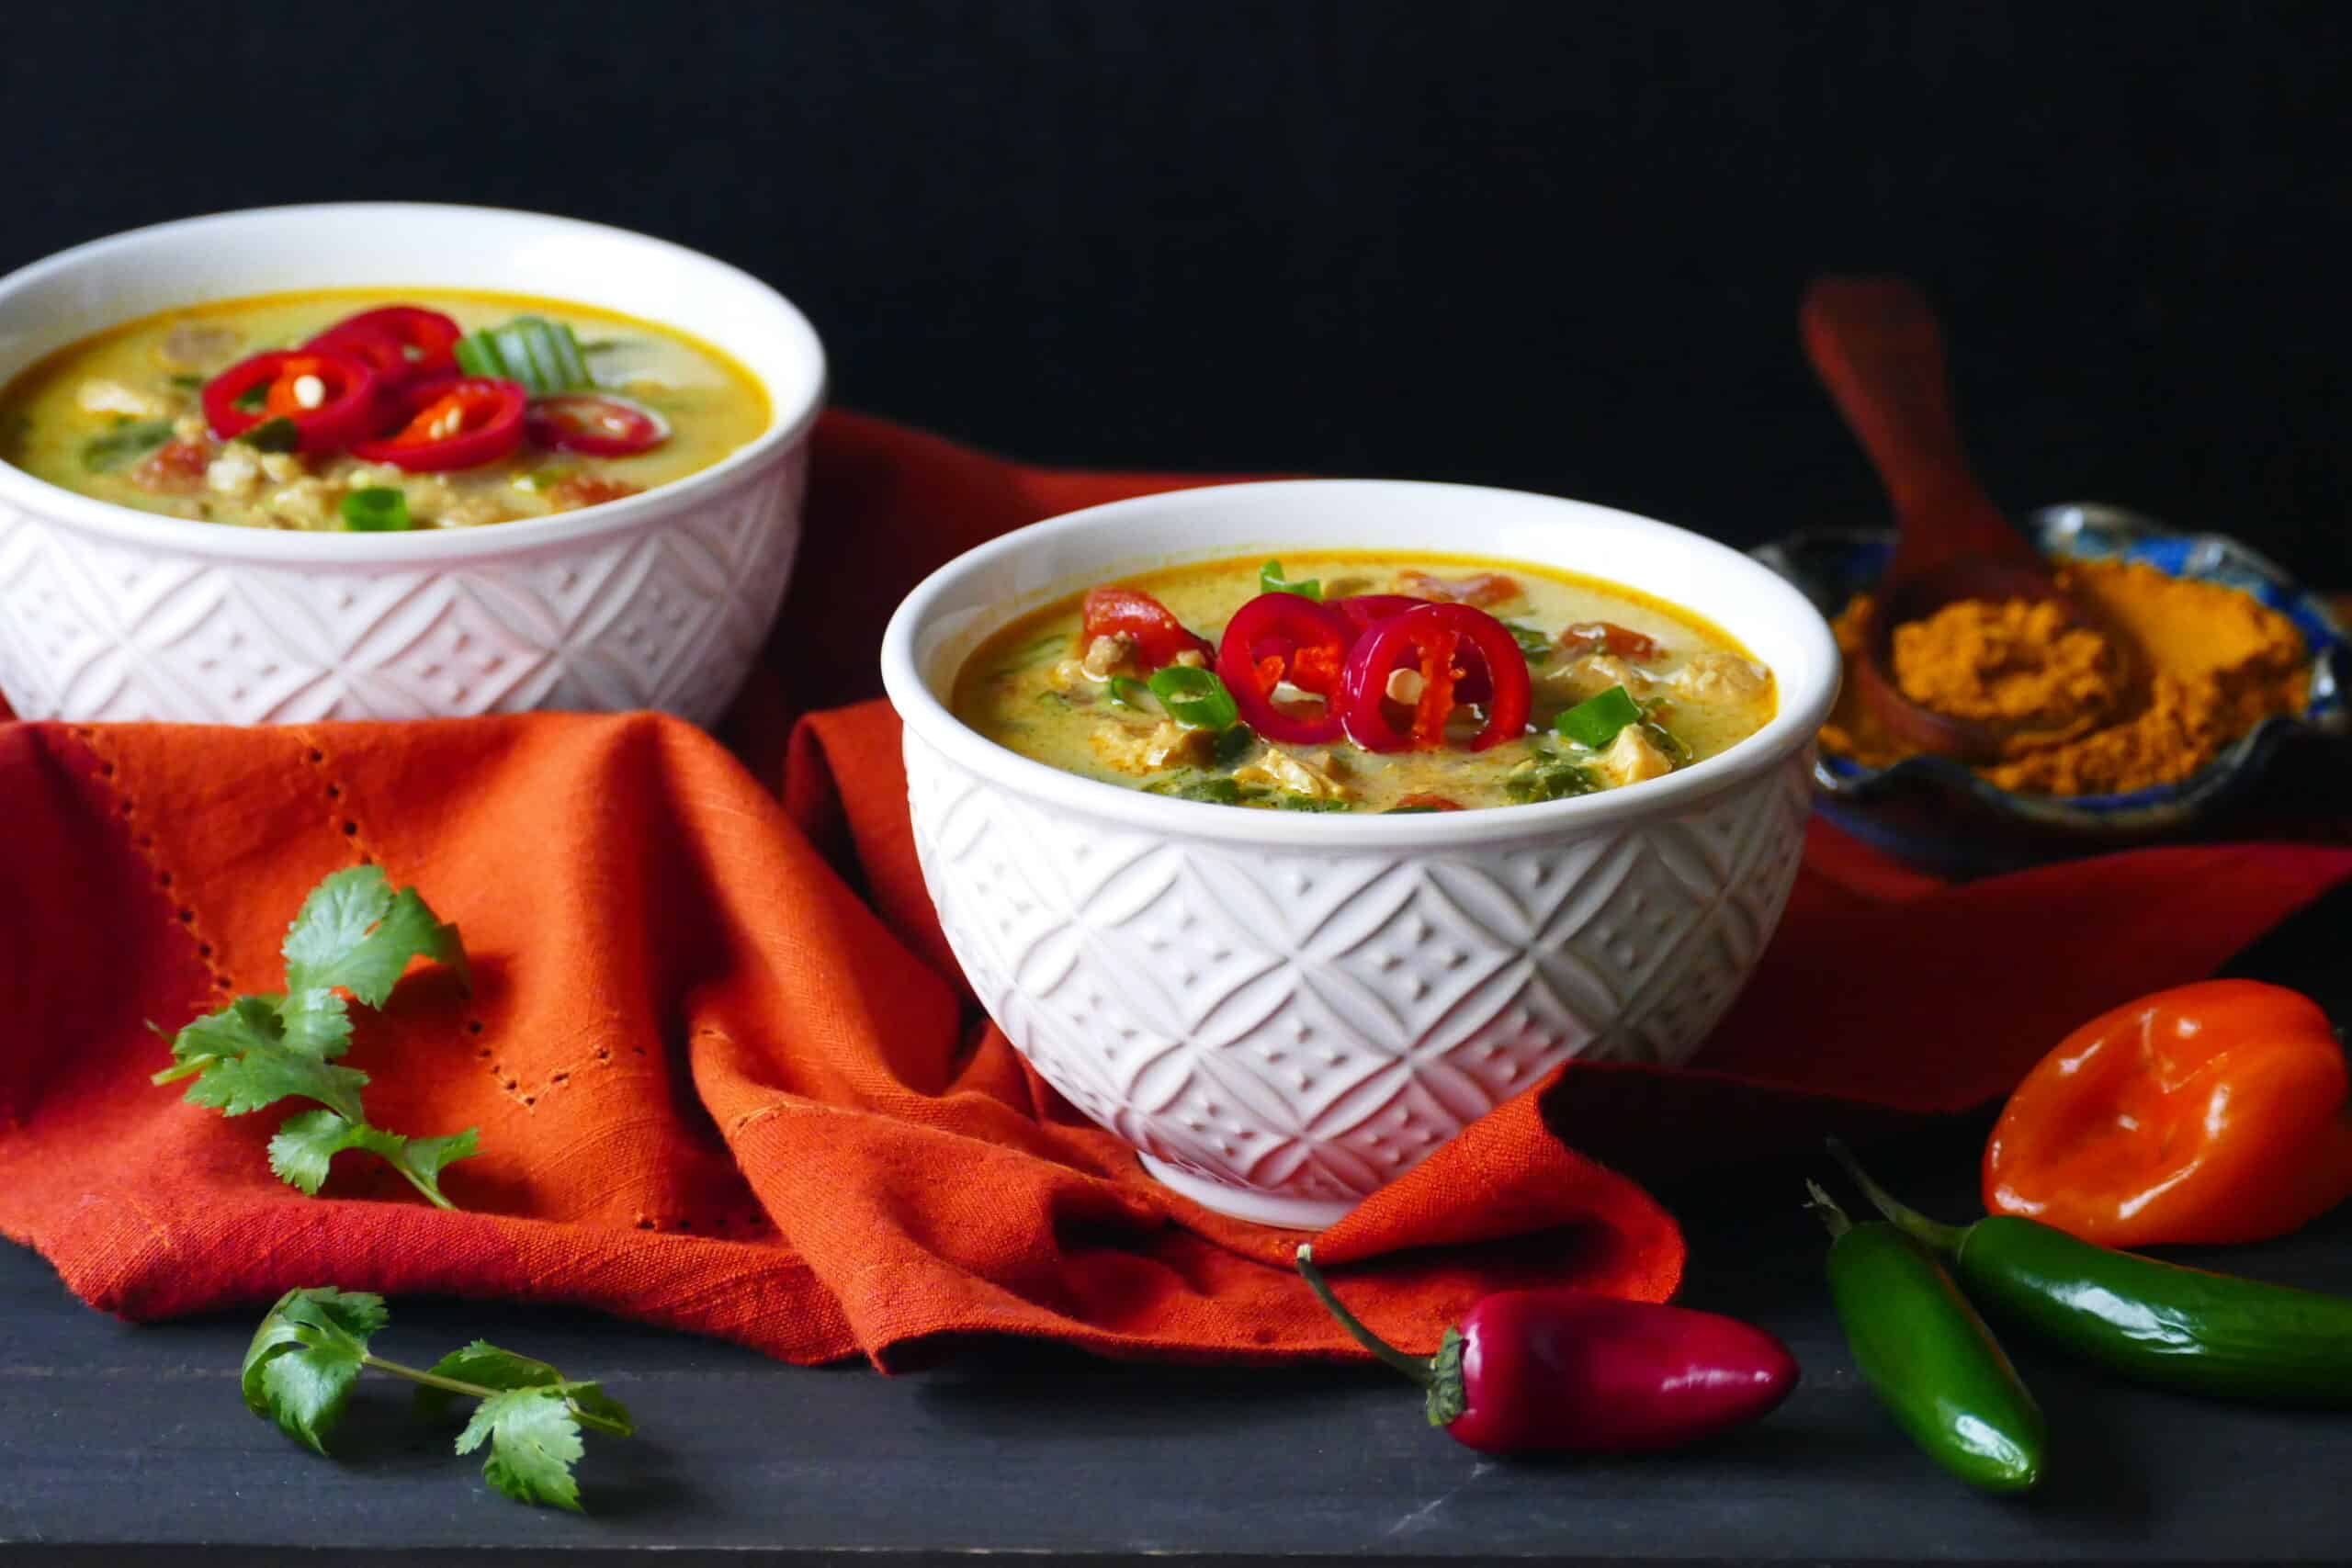 Two white bowls of yellow colored chicken curry soup garnished with red jalapenos and green onions on an orange napkin